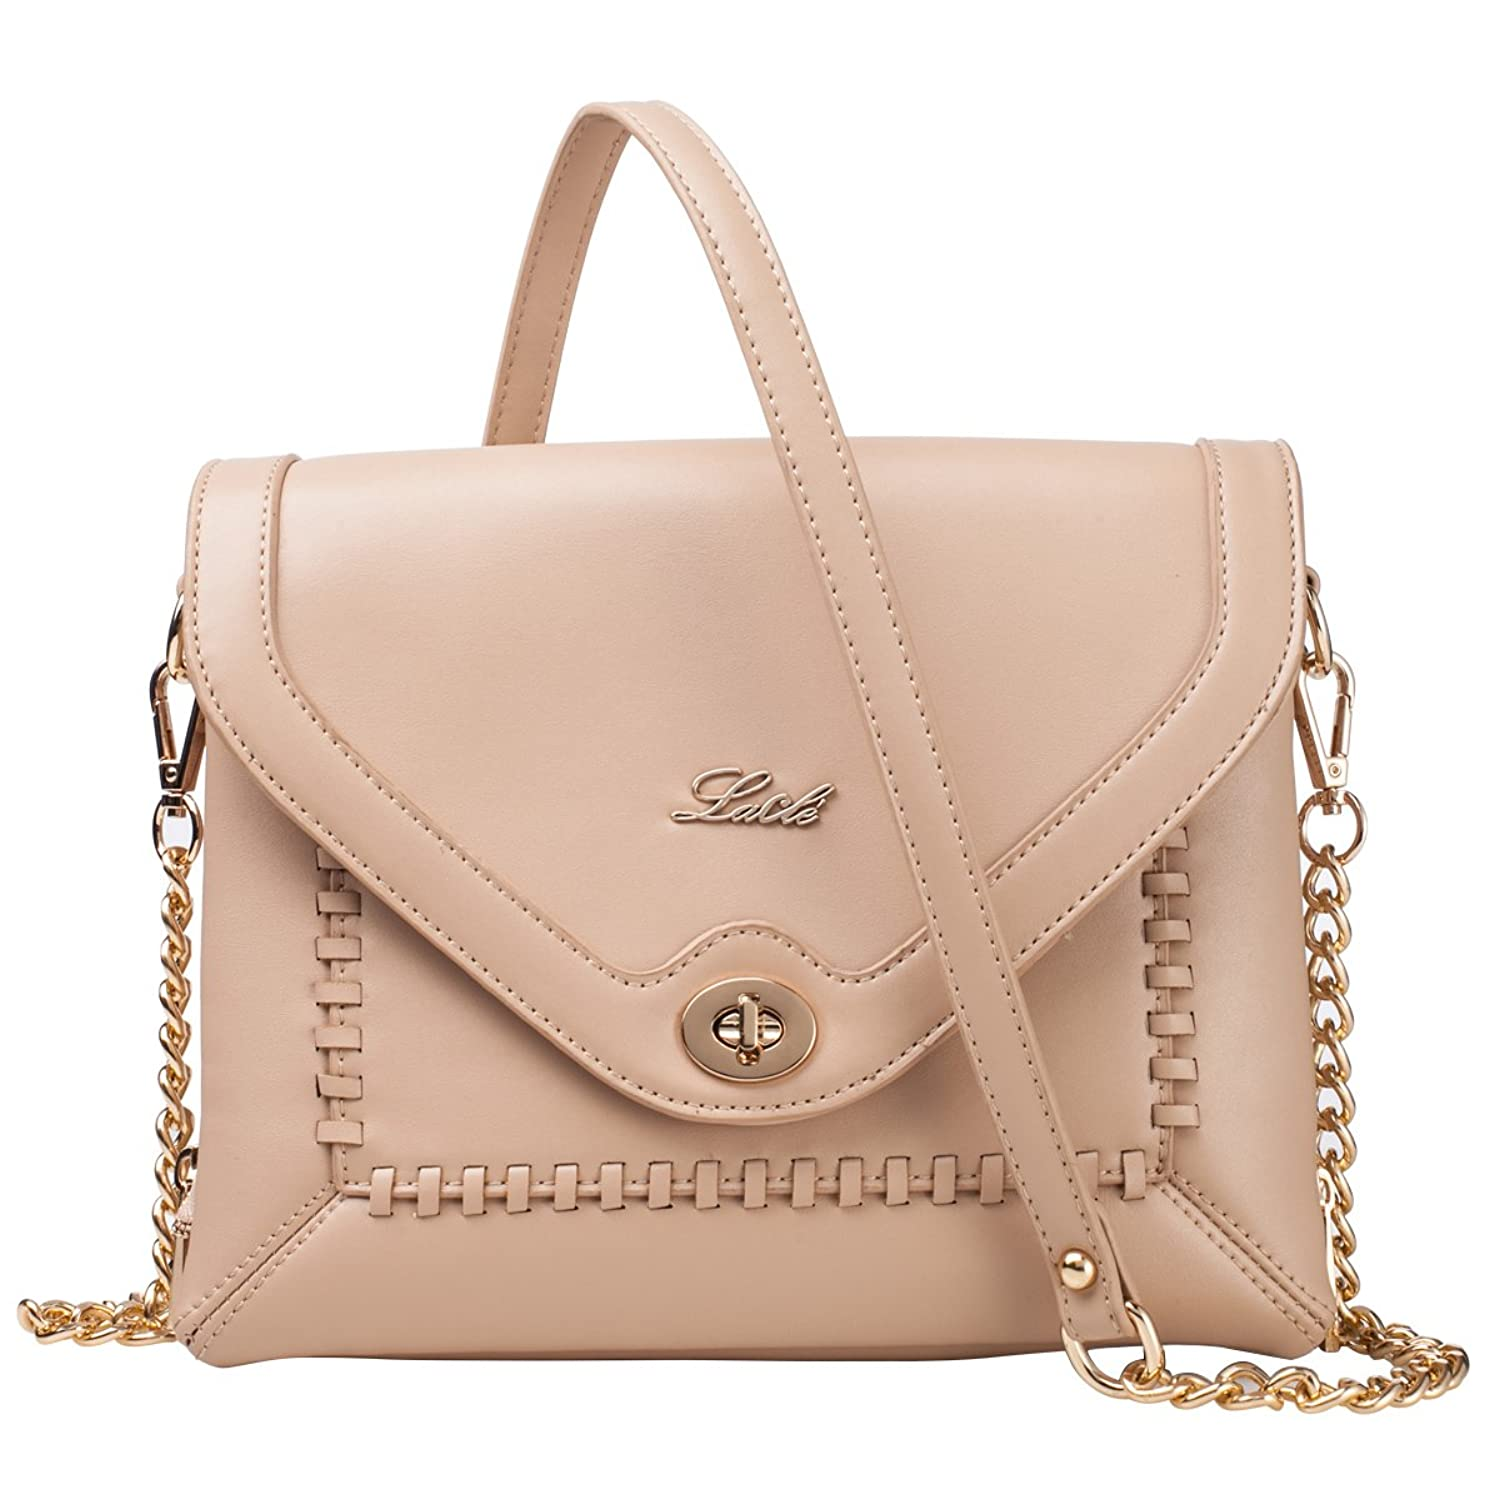 La Cle LA-052 Braided Crossbody Shoulder Leather Bag